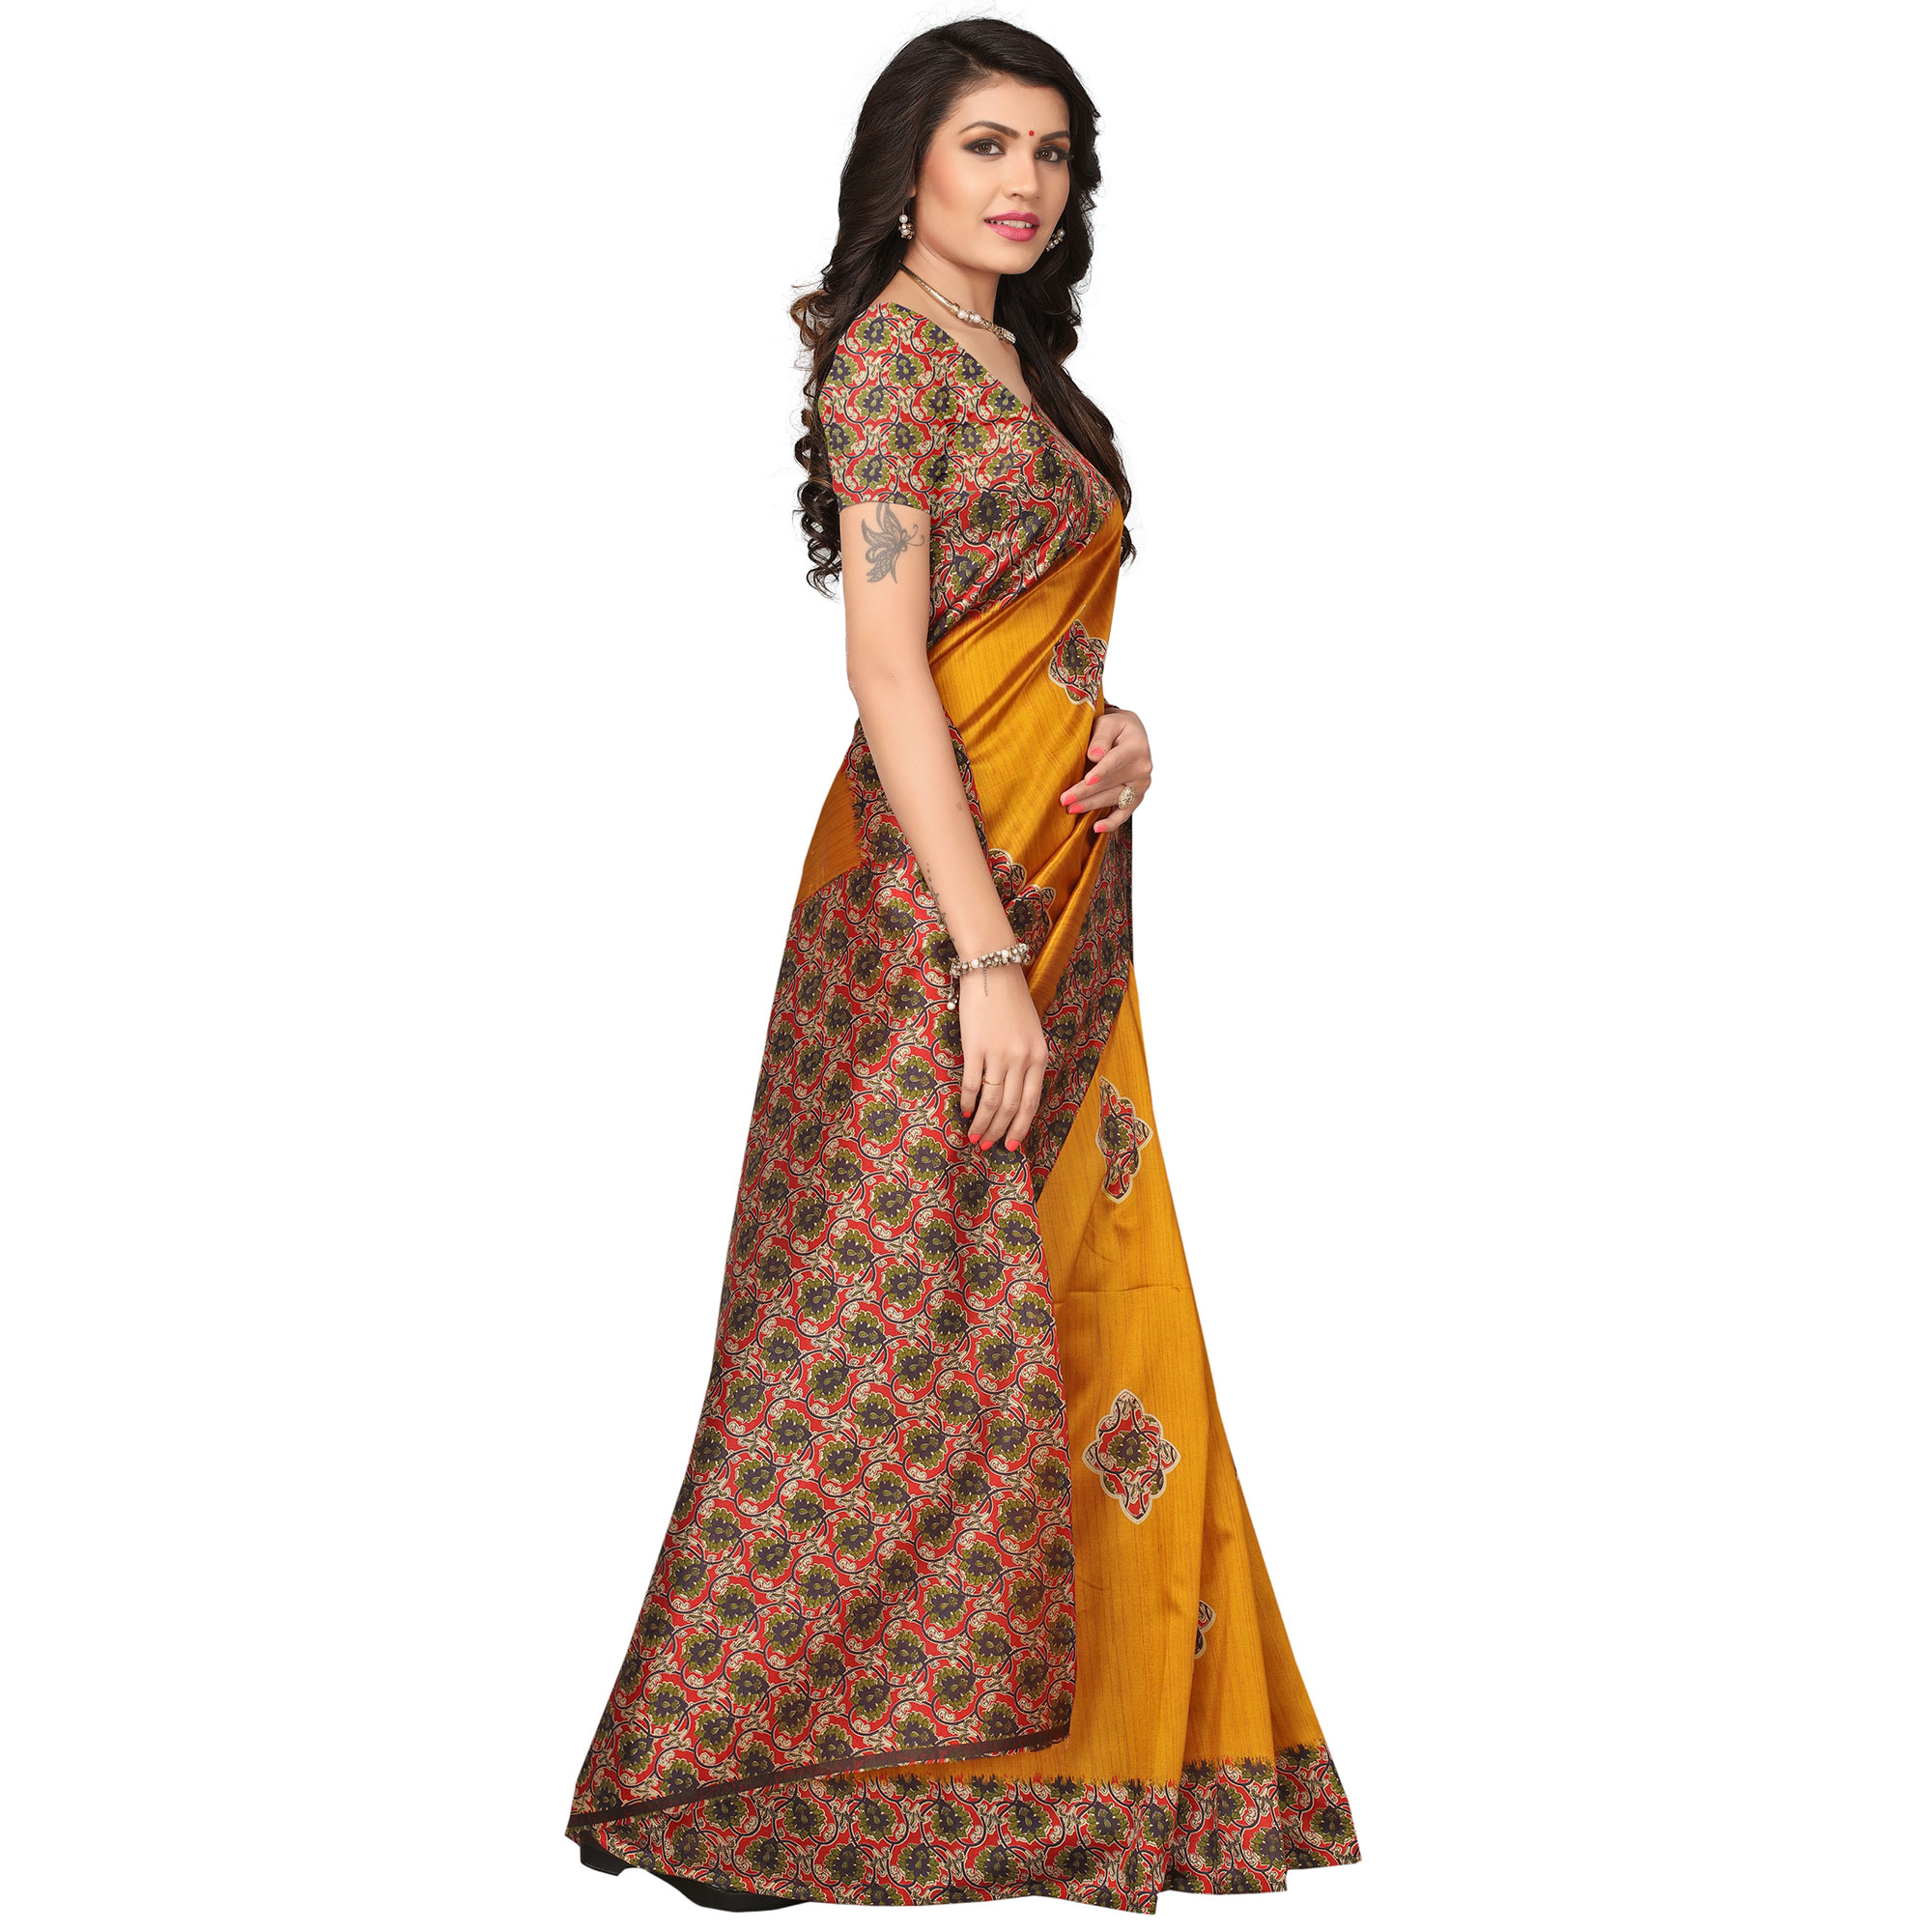 Groovy Yellow Colored Kalamkari Printed Mysore Art Silk Saree